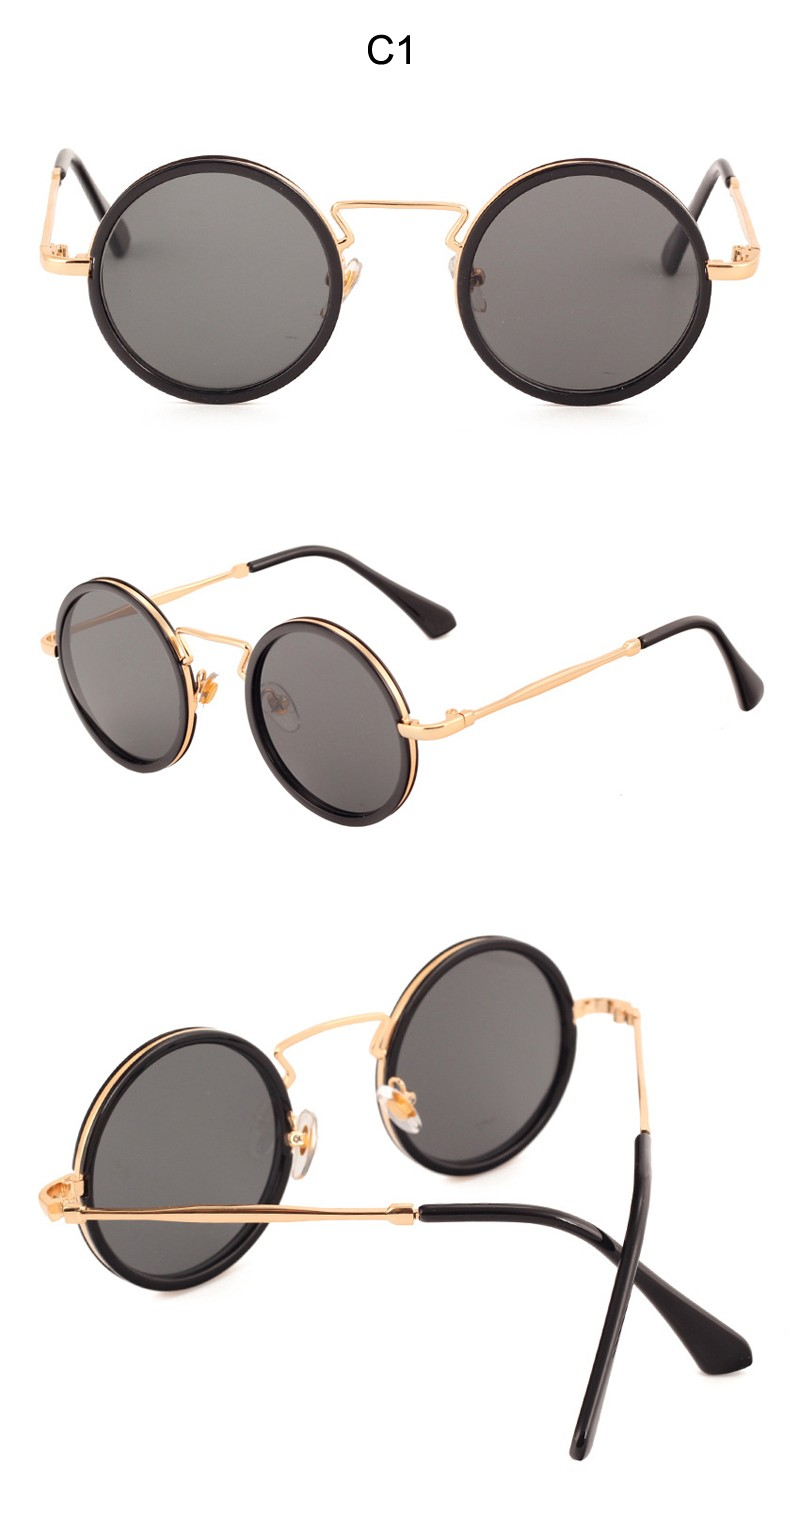 Newest Famous Brand Design Sunglasses Women Round Sunglasses Vintage Woman Sun glasses Female Oculos Feminino UV400 CC5078